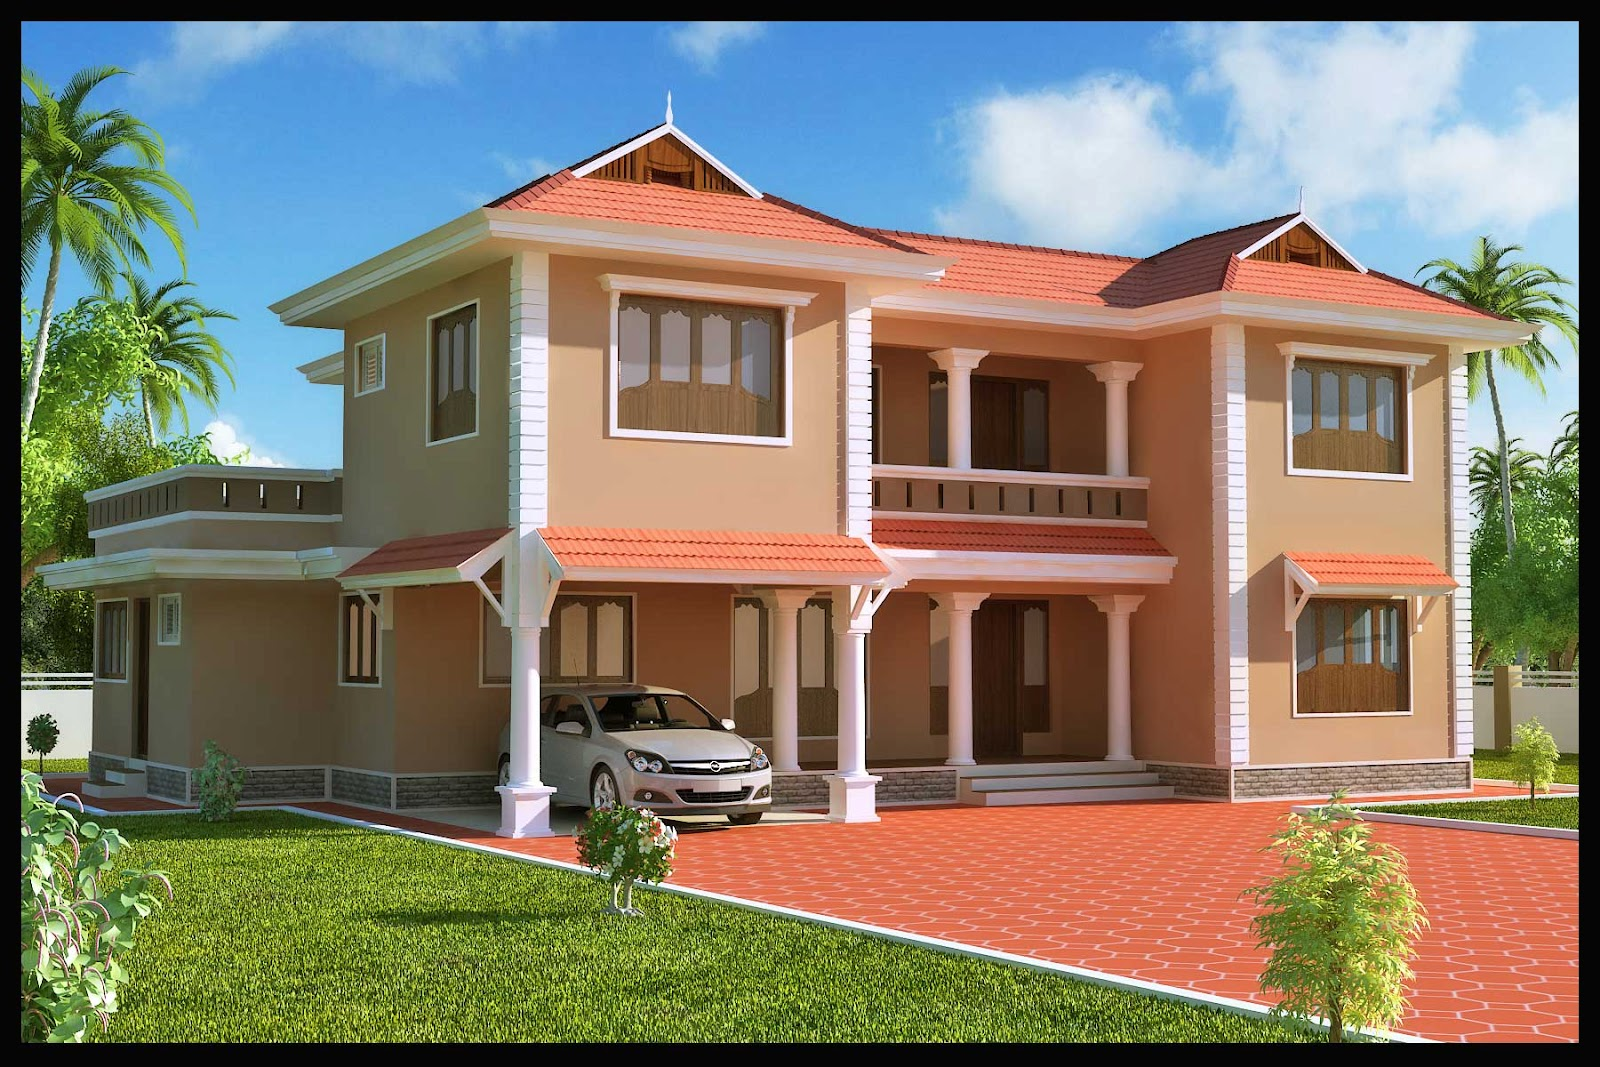 Kerala building construction Indian home exterior design photos